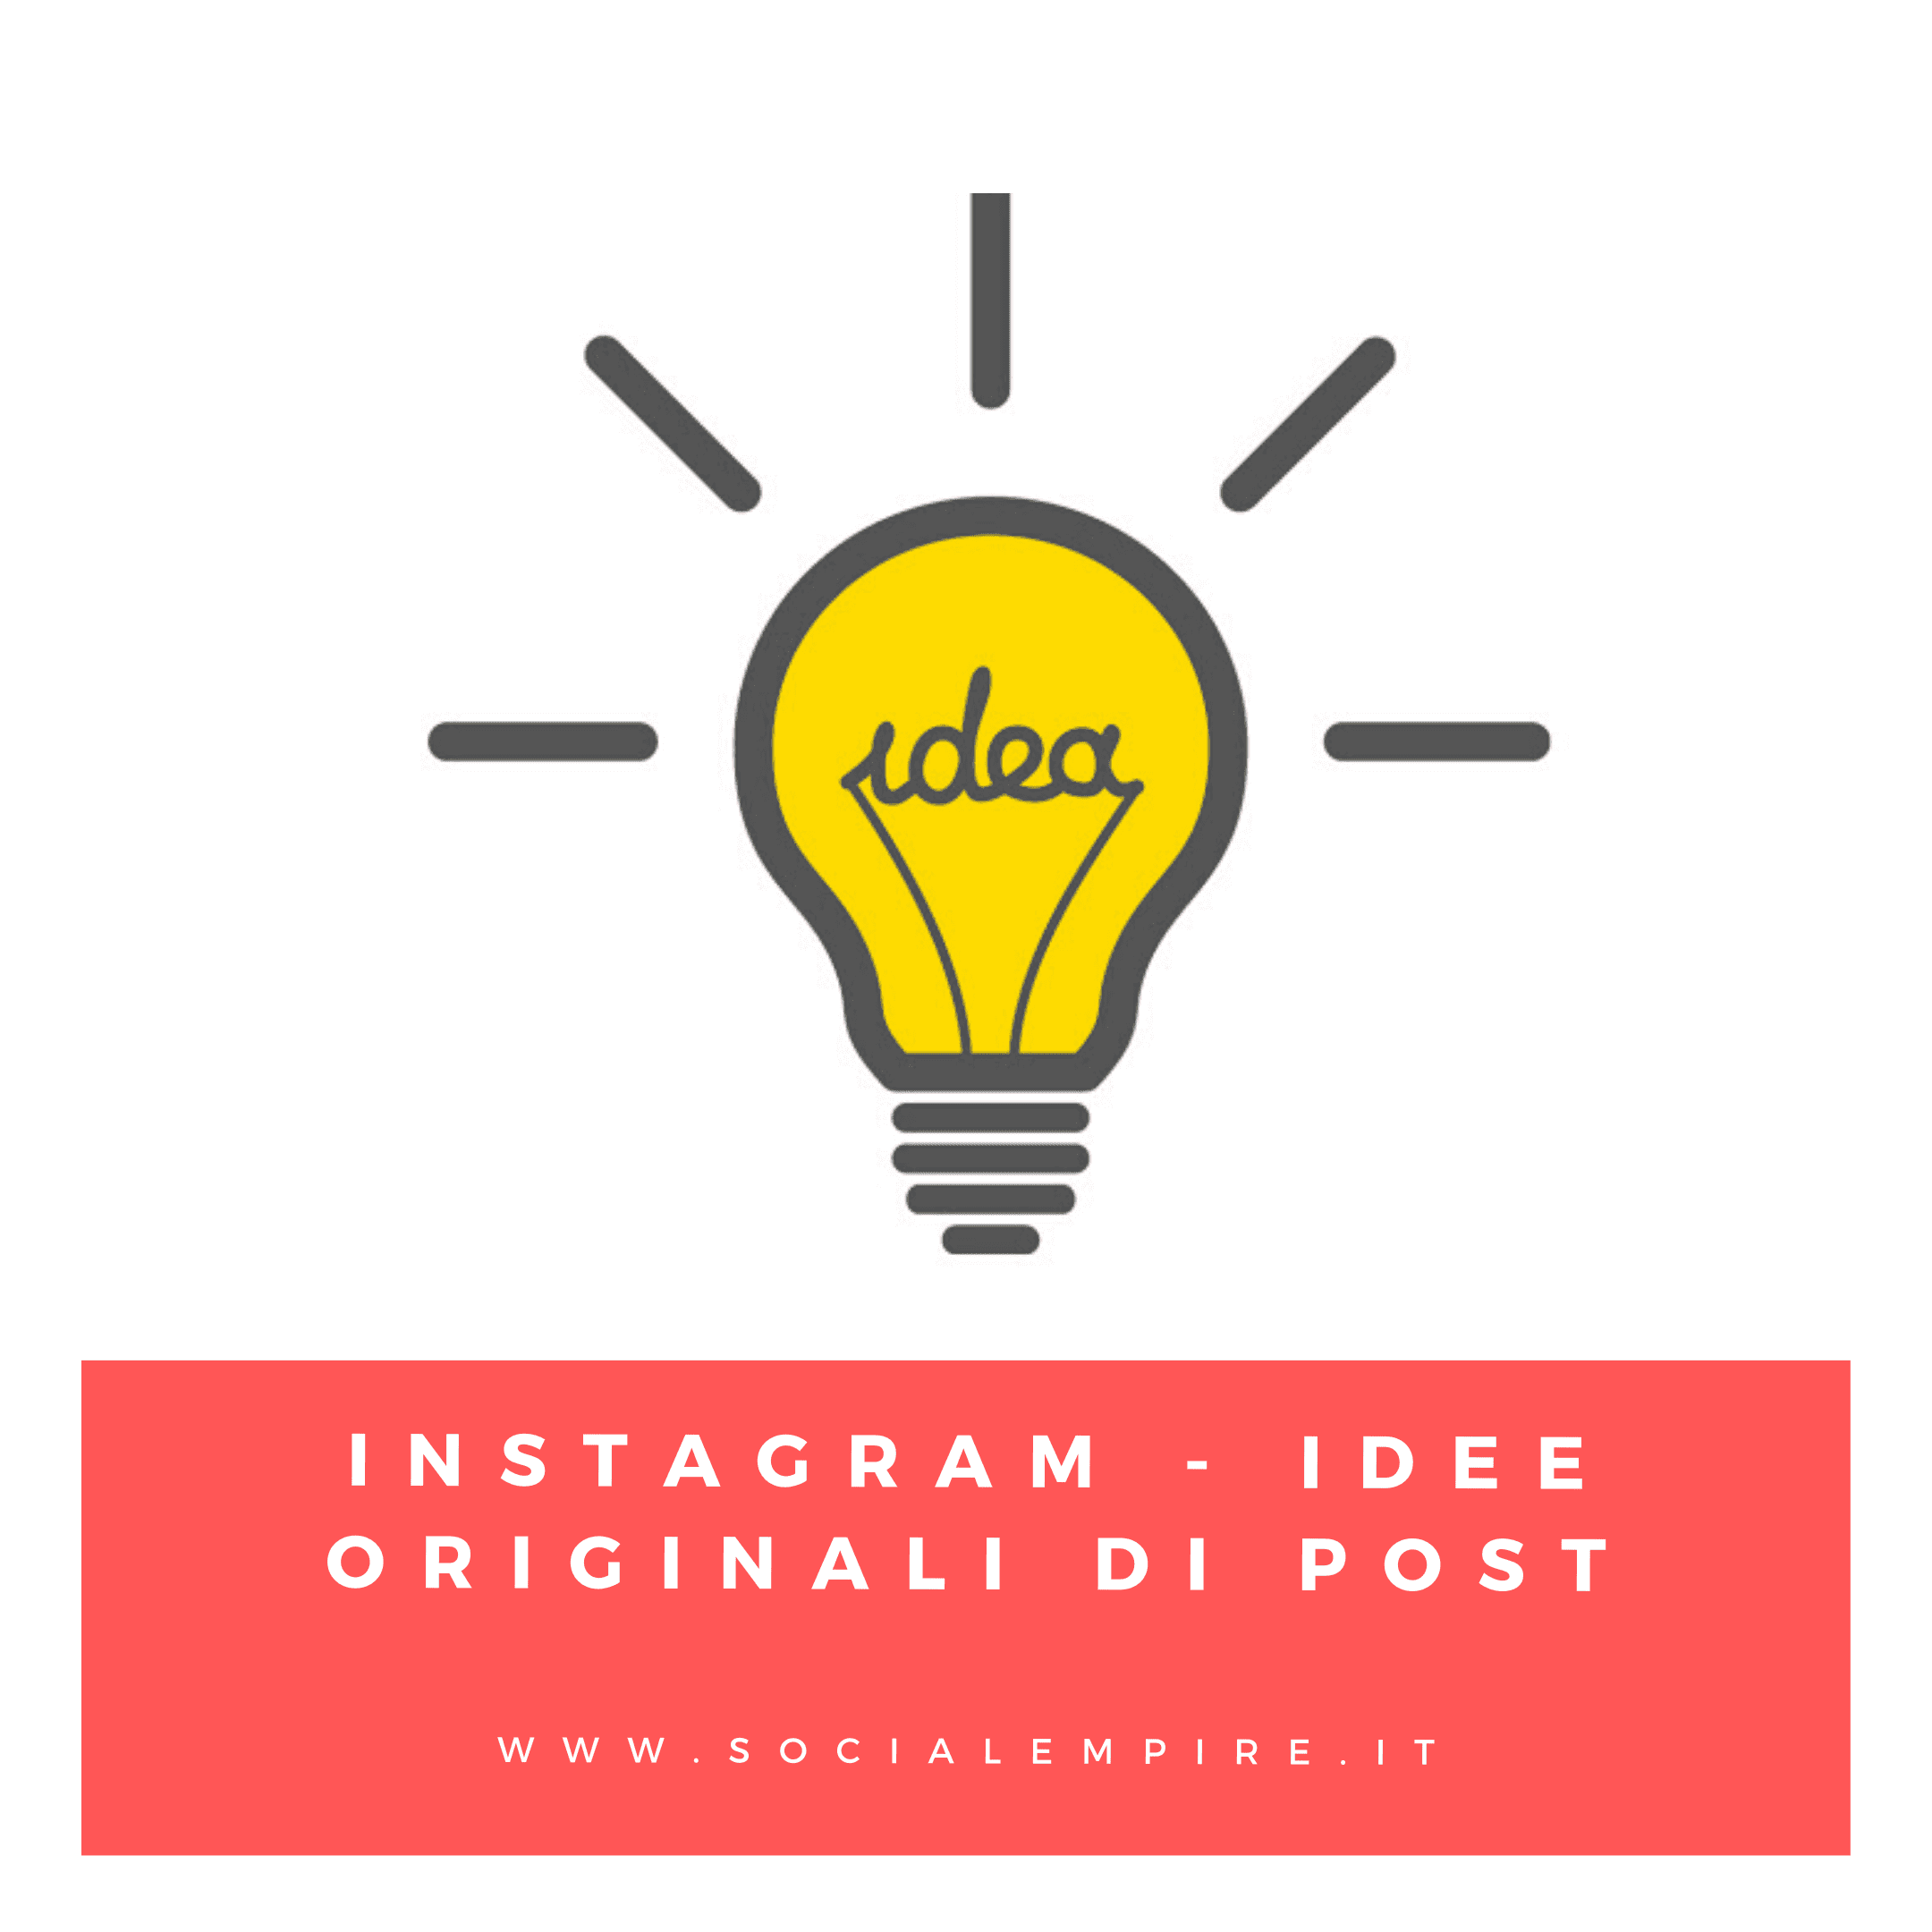 instagram idee di post